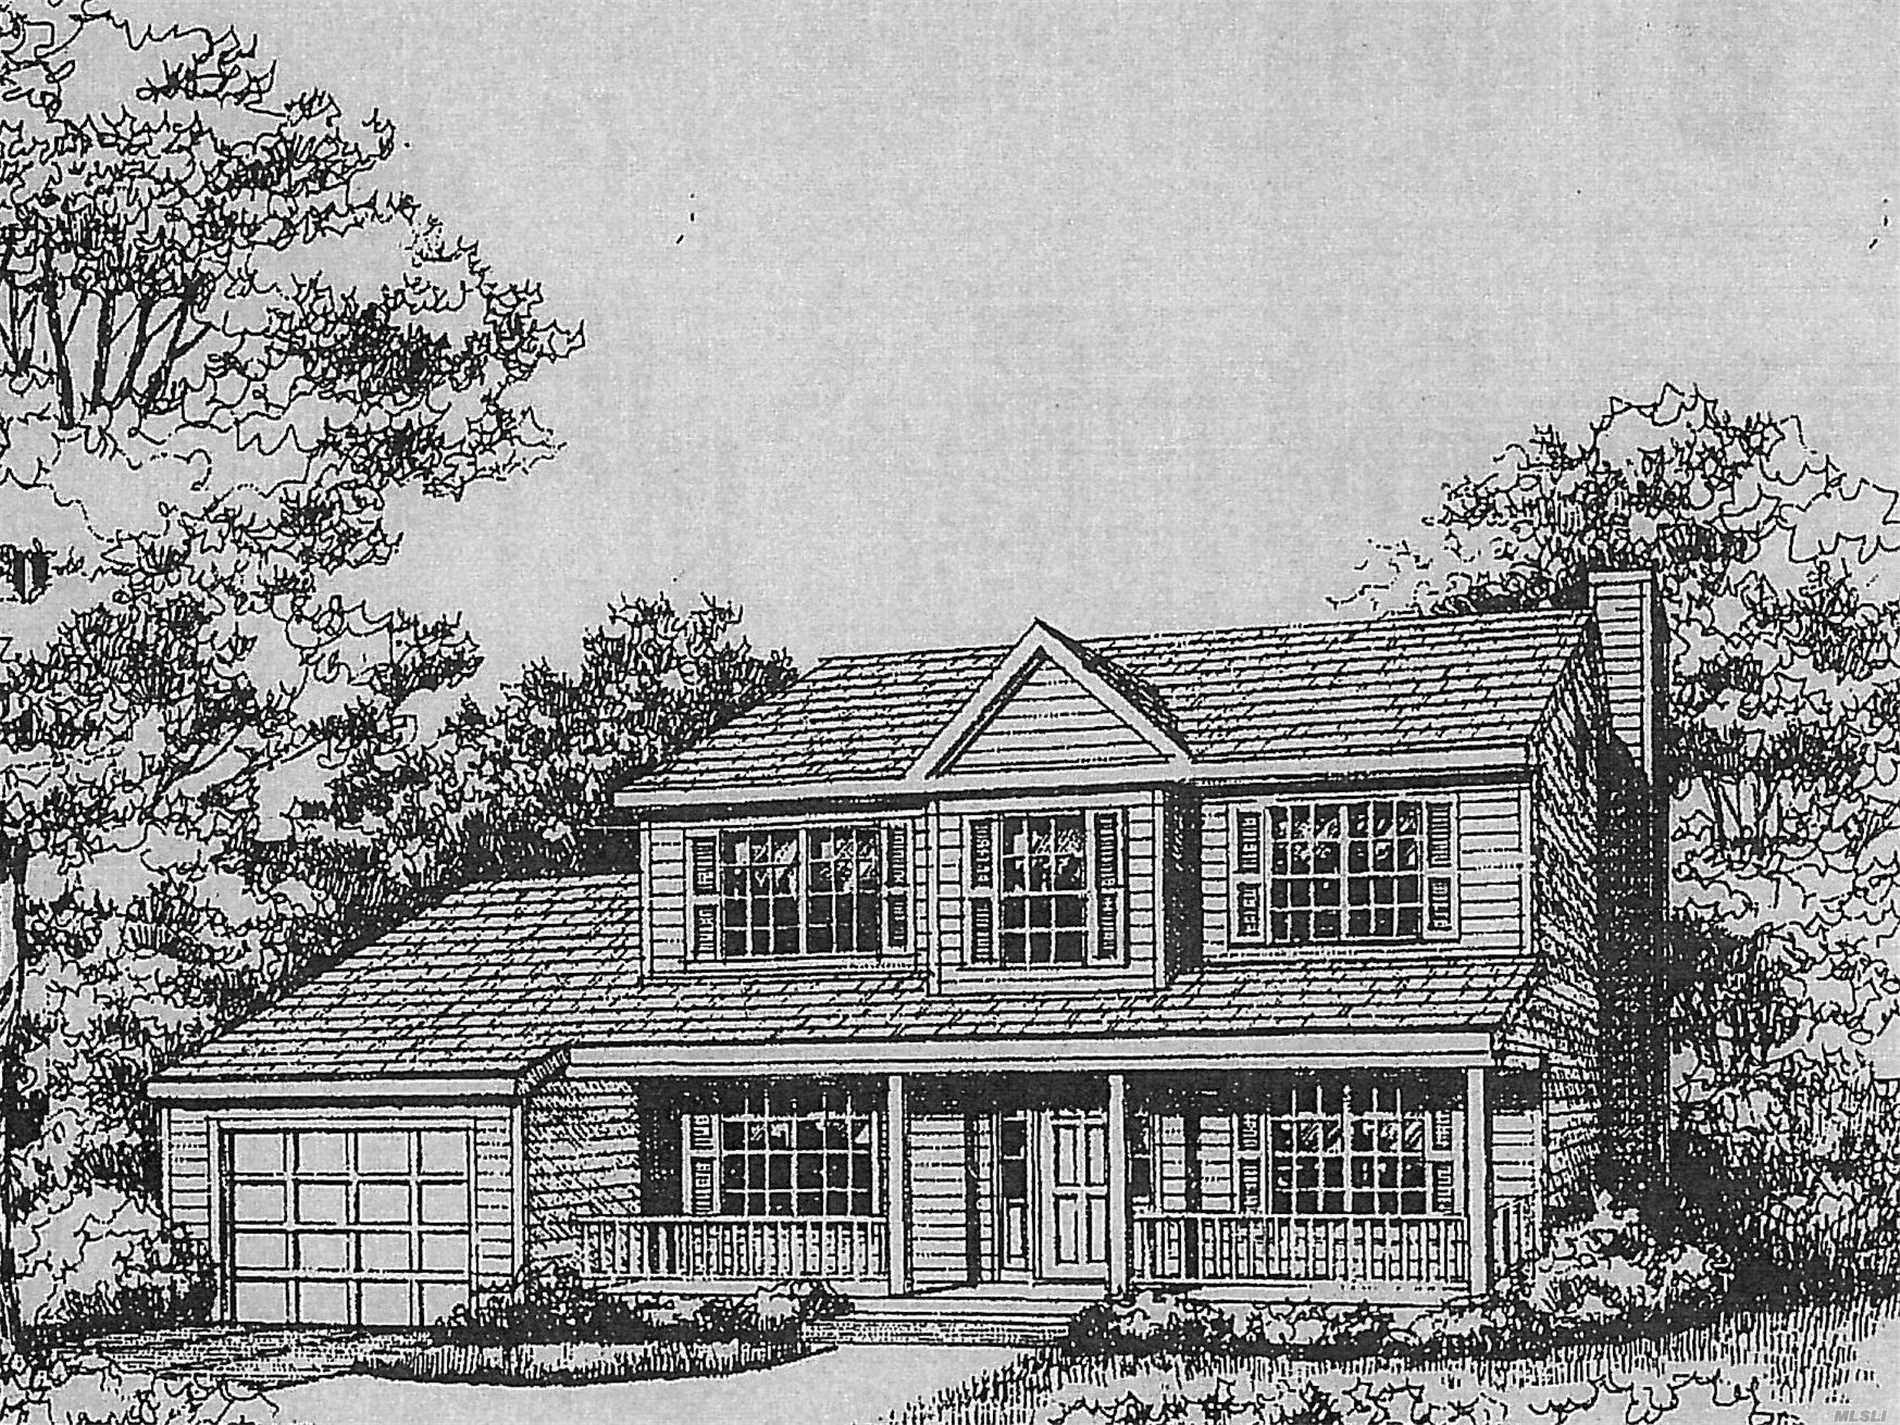 This Is Only One Of Several Models That Can Be Built On This Large, Wooded Lot, Facing Taylor Ct, Loaded With All The Bells And Whistles (Oak/Ceramic/Carpeted Flooring, Granite Tops, Ceramic Baths, Cathedral Ceilings), Close To Lie, Lirr, Shopping Centers, Houses Of Worship., Sachem Schools, Beautiful Wooded Lot, Custom Design Your Dream Home By Picking Out Your Favorite Granite, Ceramic Tile, Carpet And Cabinet Colors Now